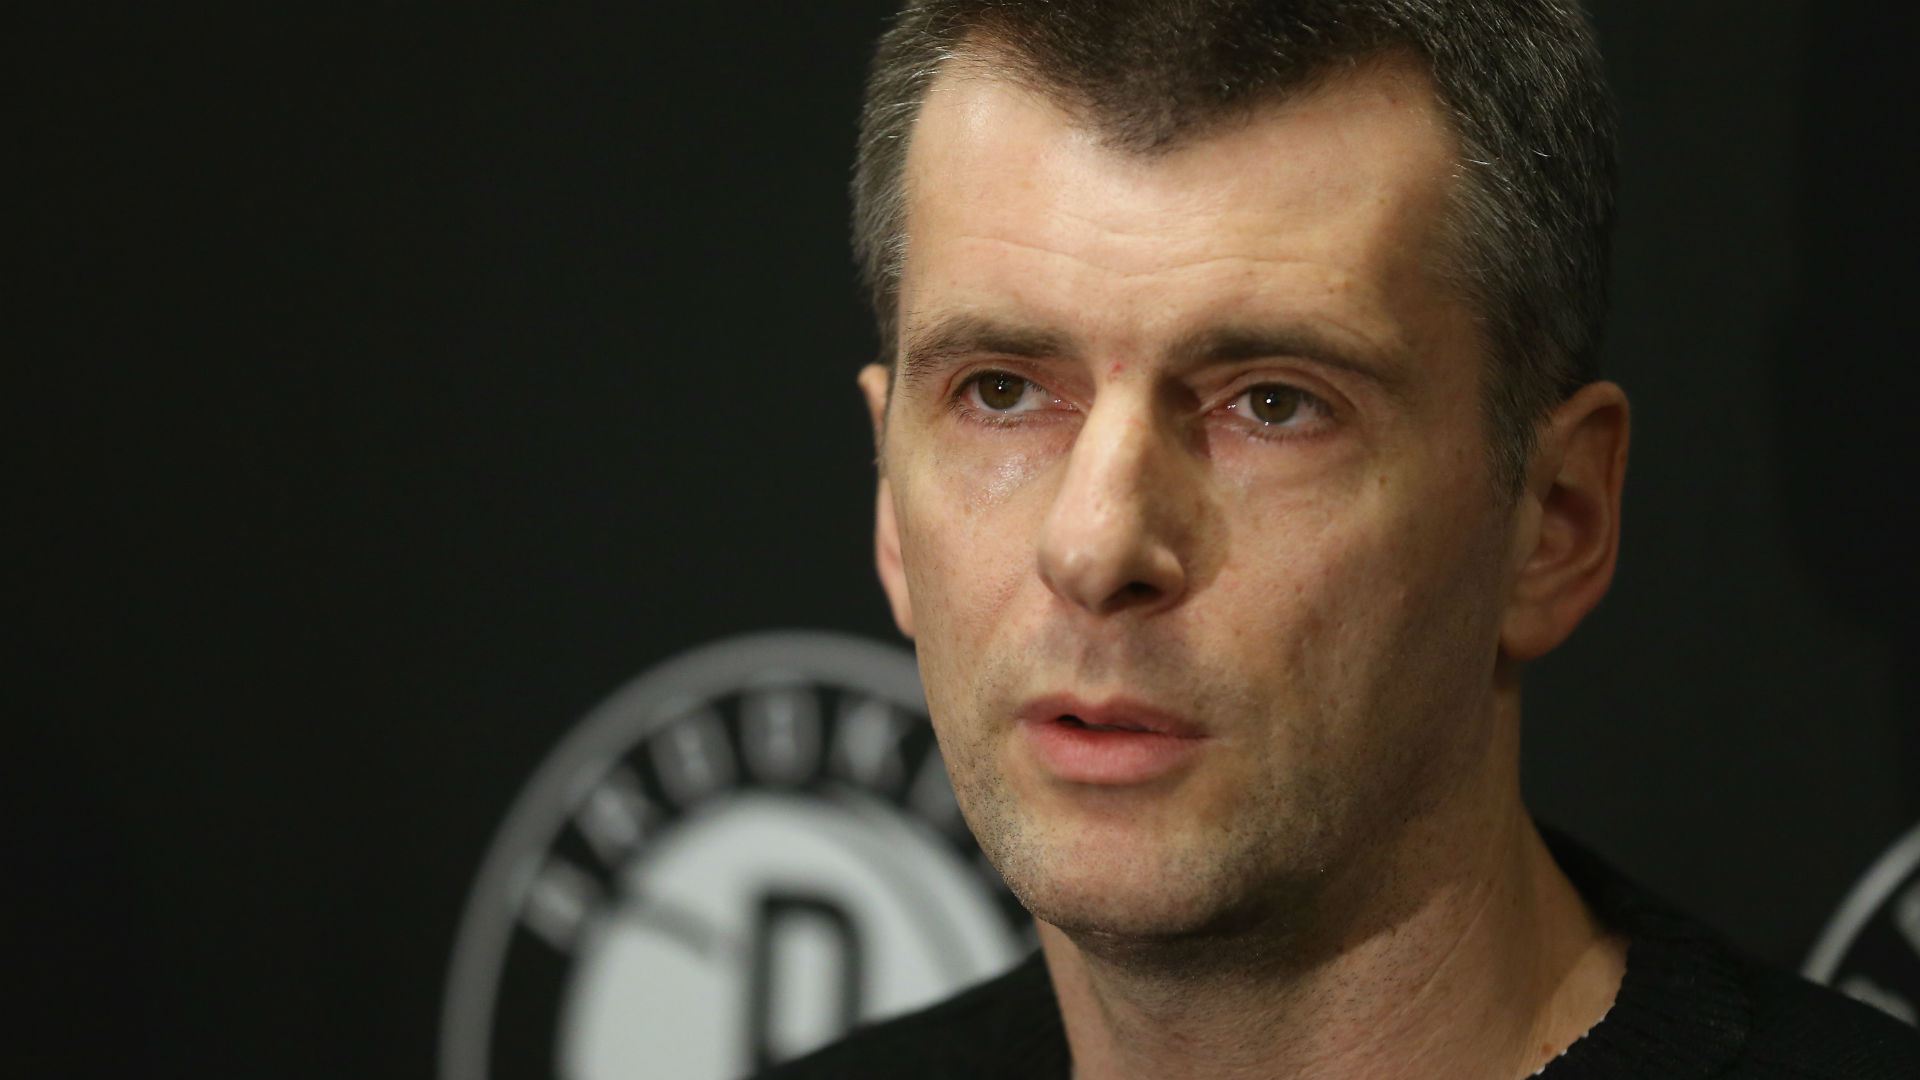 Mikhail-Prokhorov-031015-getty-ftr-us.jpg